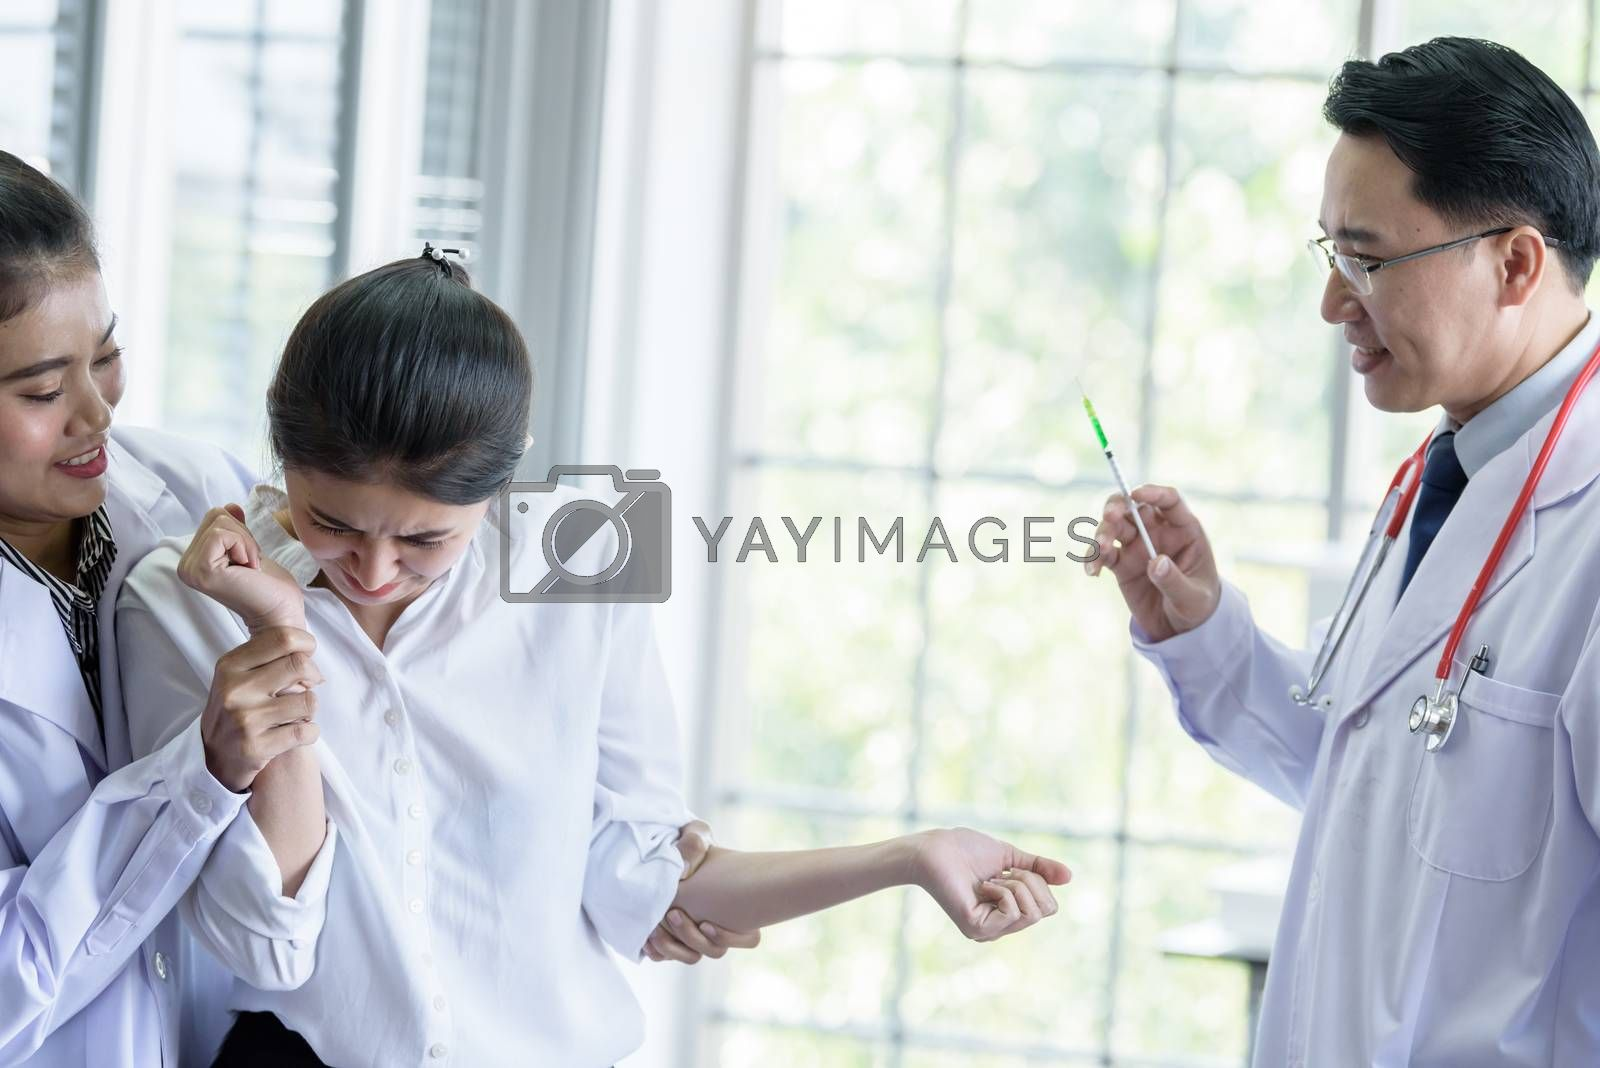 Patient has afraid and scary of syringe and needle.